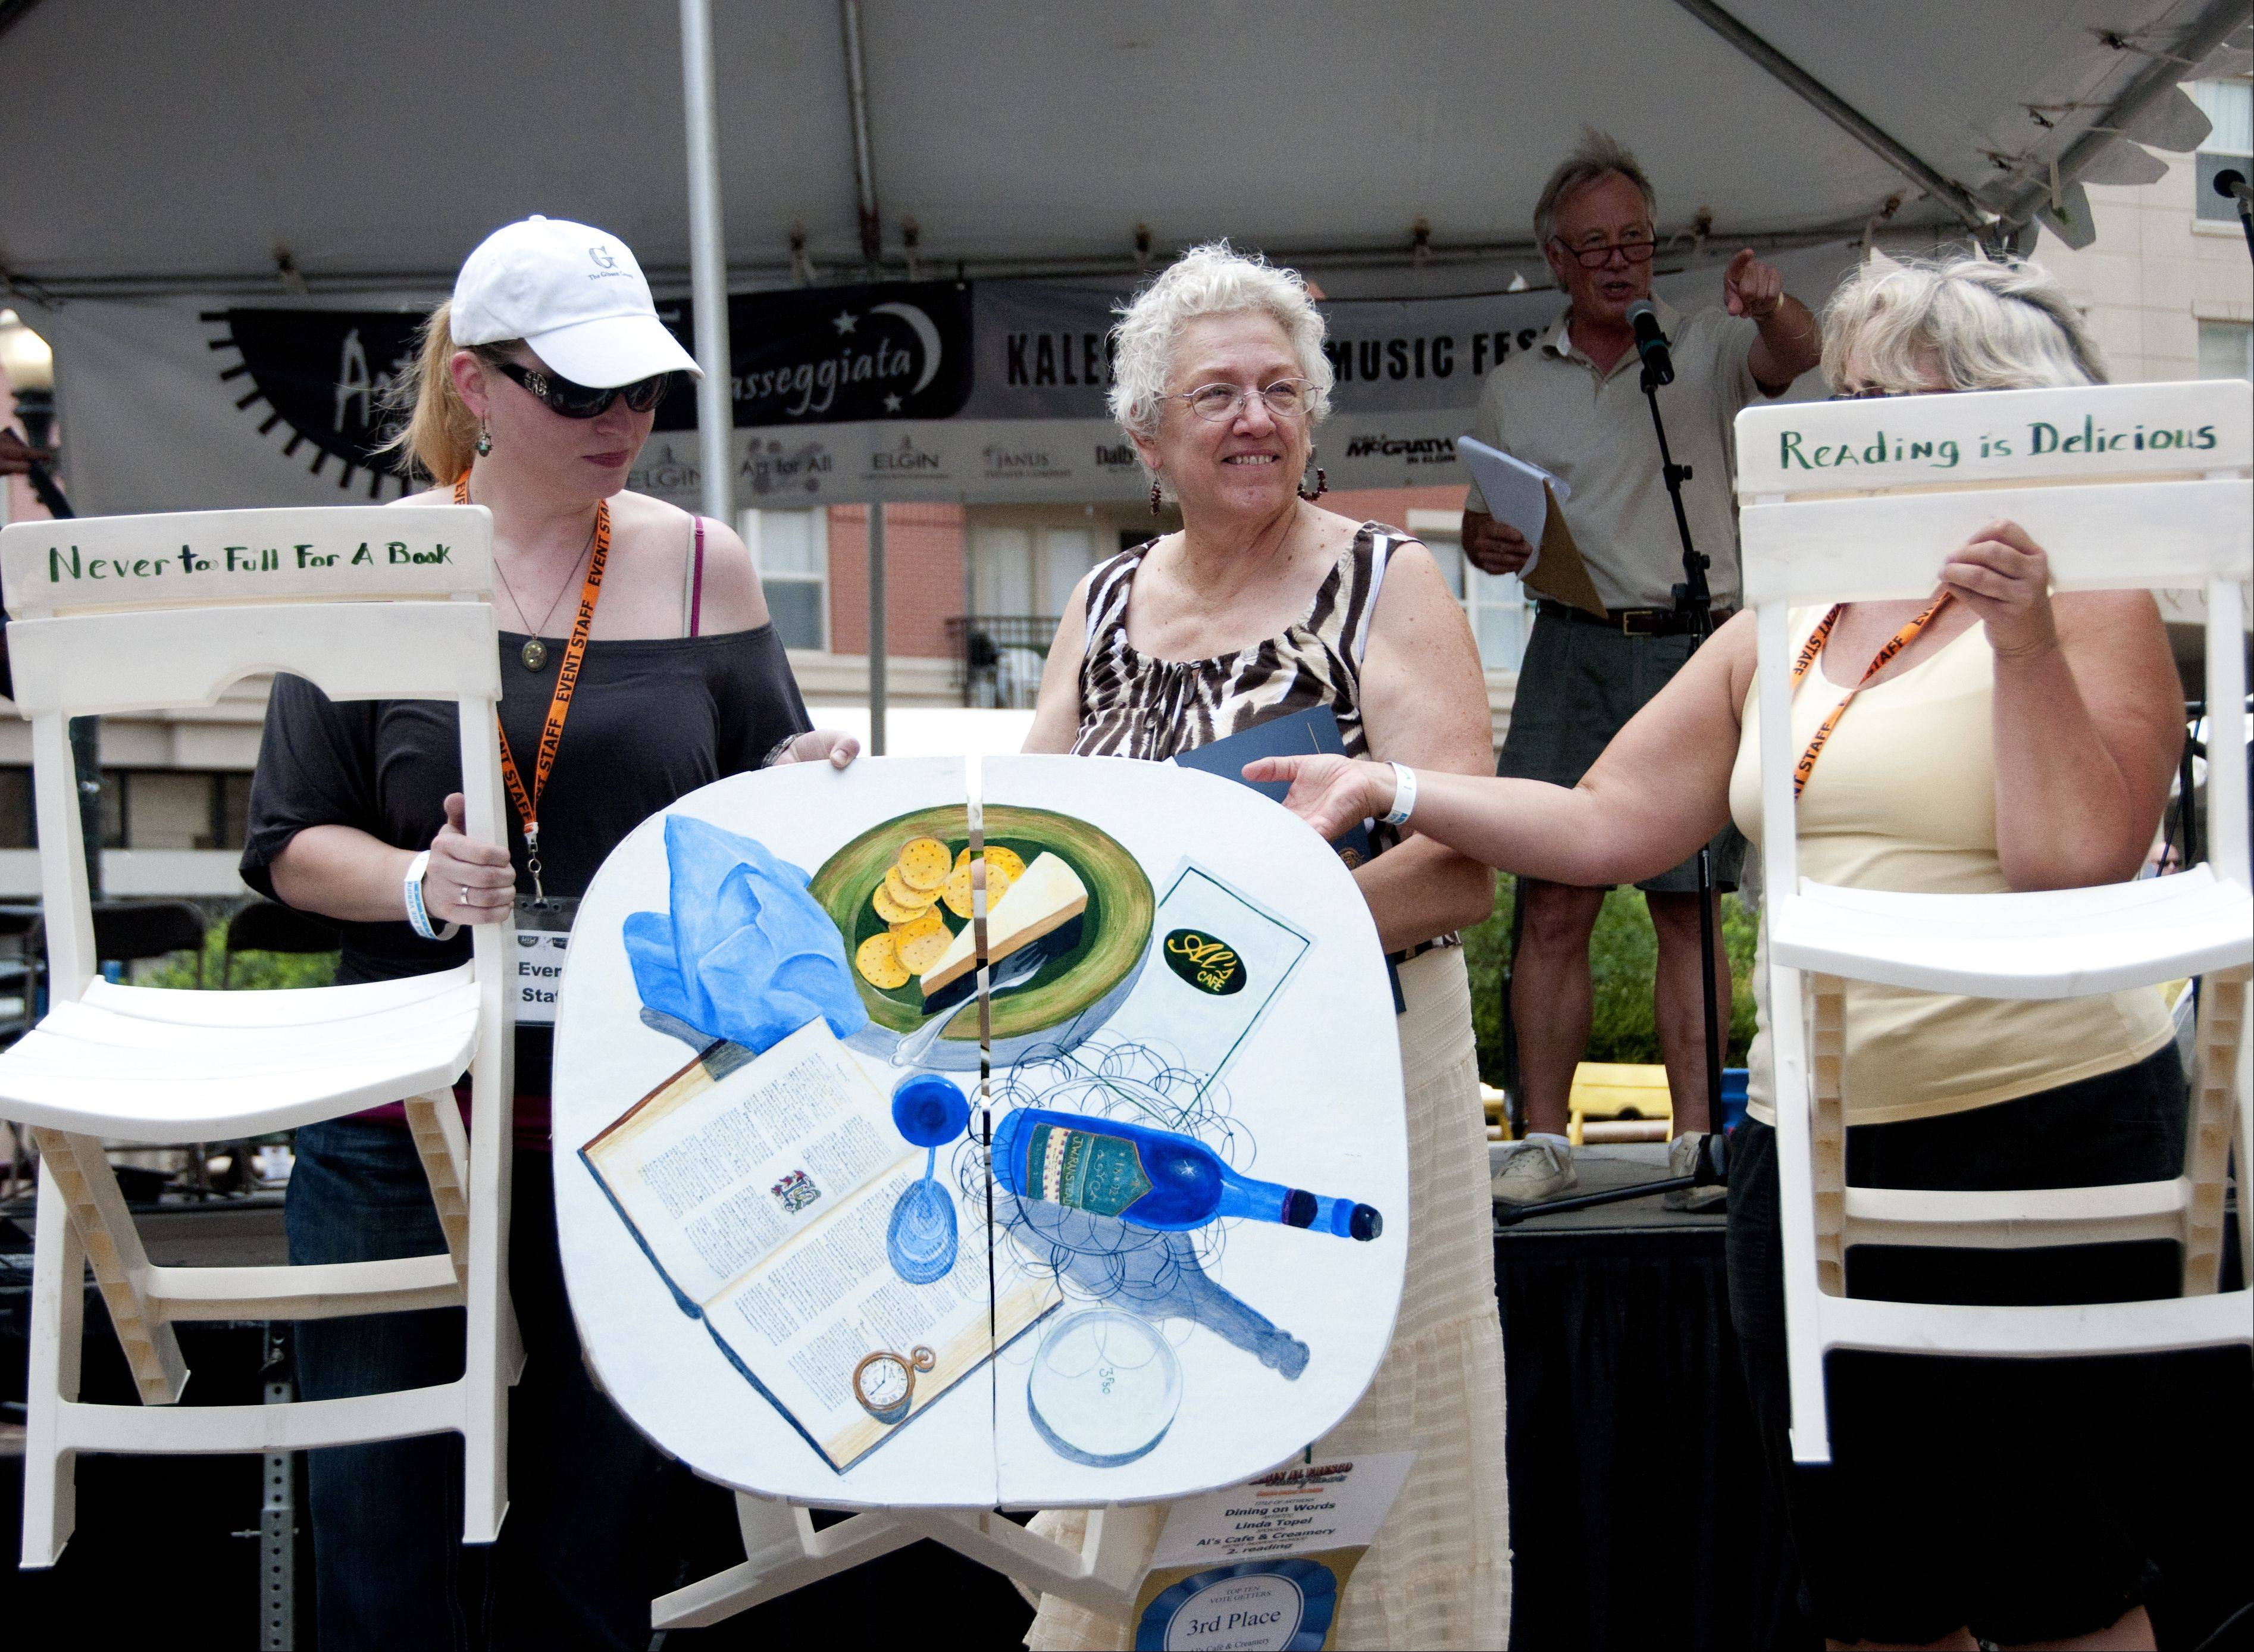 Linda Topel of Bensenville helps auction off her Best in Show decorated table at Day 2 of the Art & Soul on the Fox in Elgin Sunday.